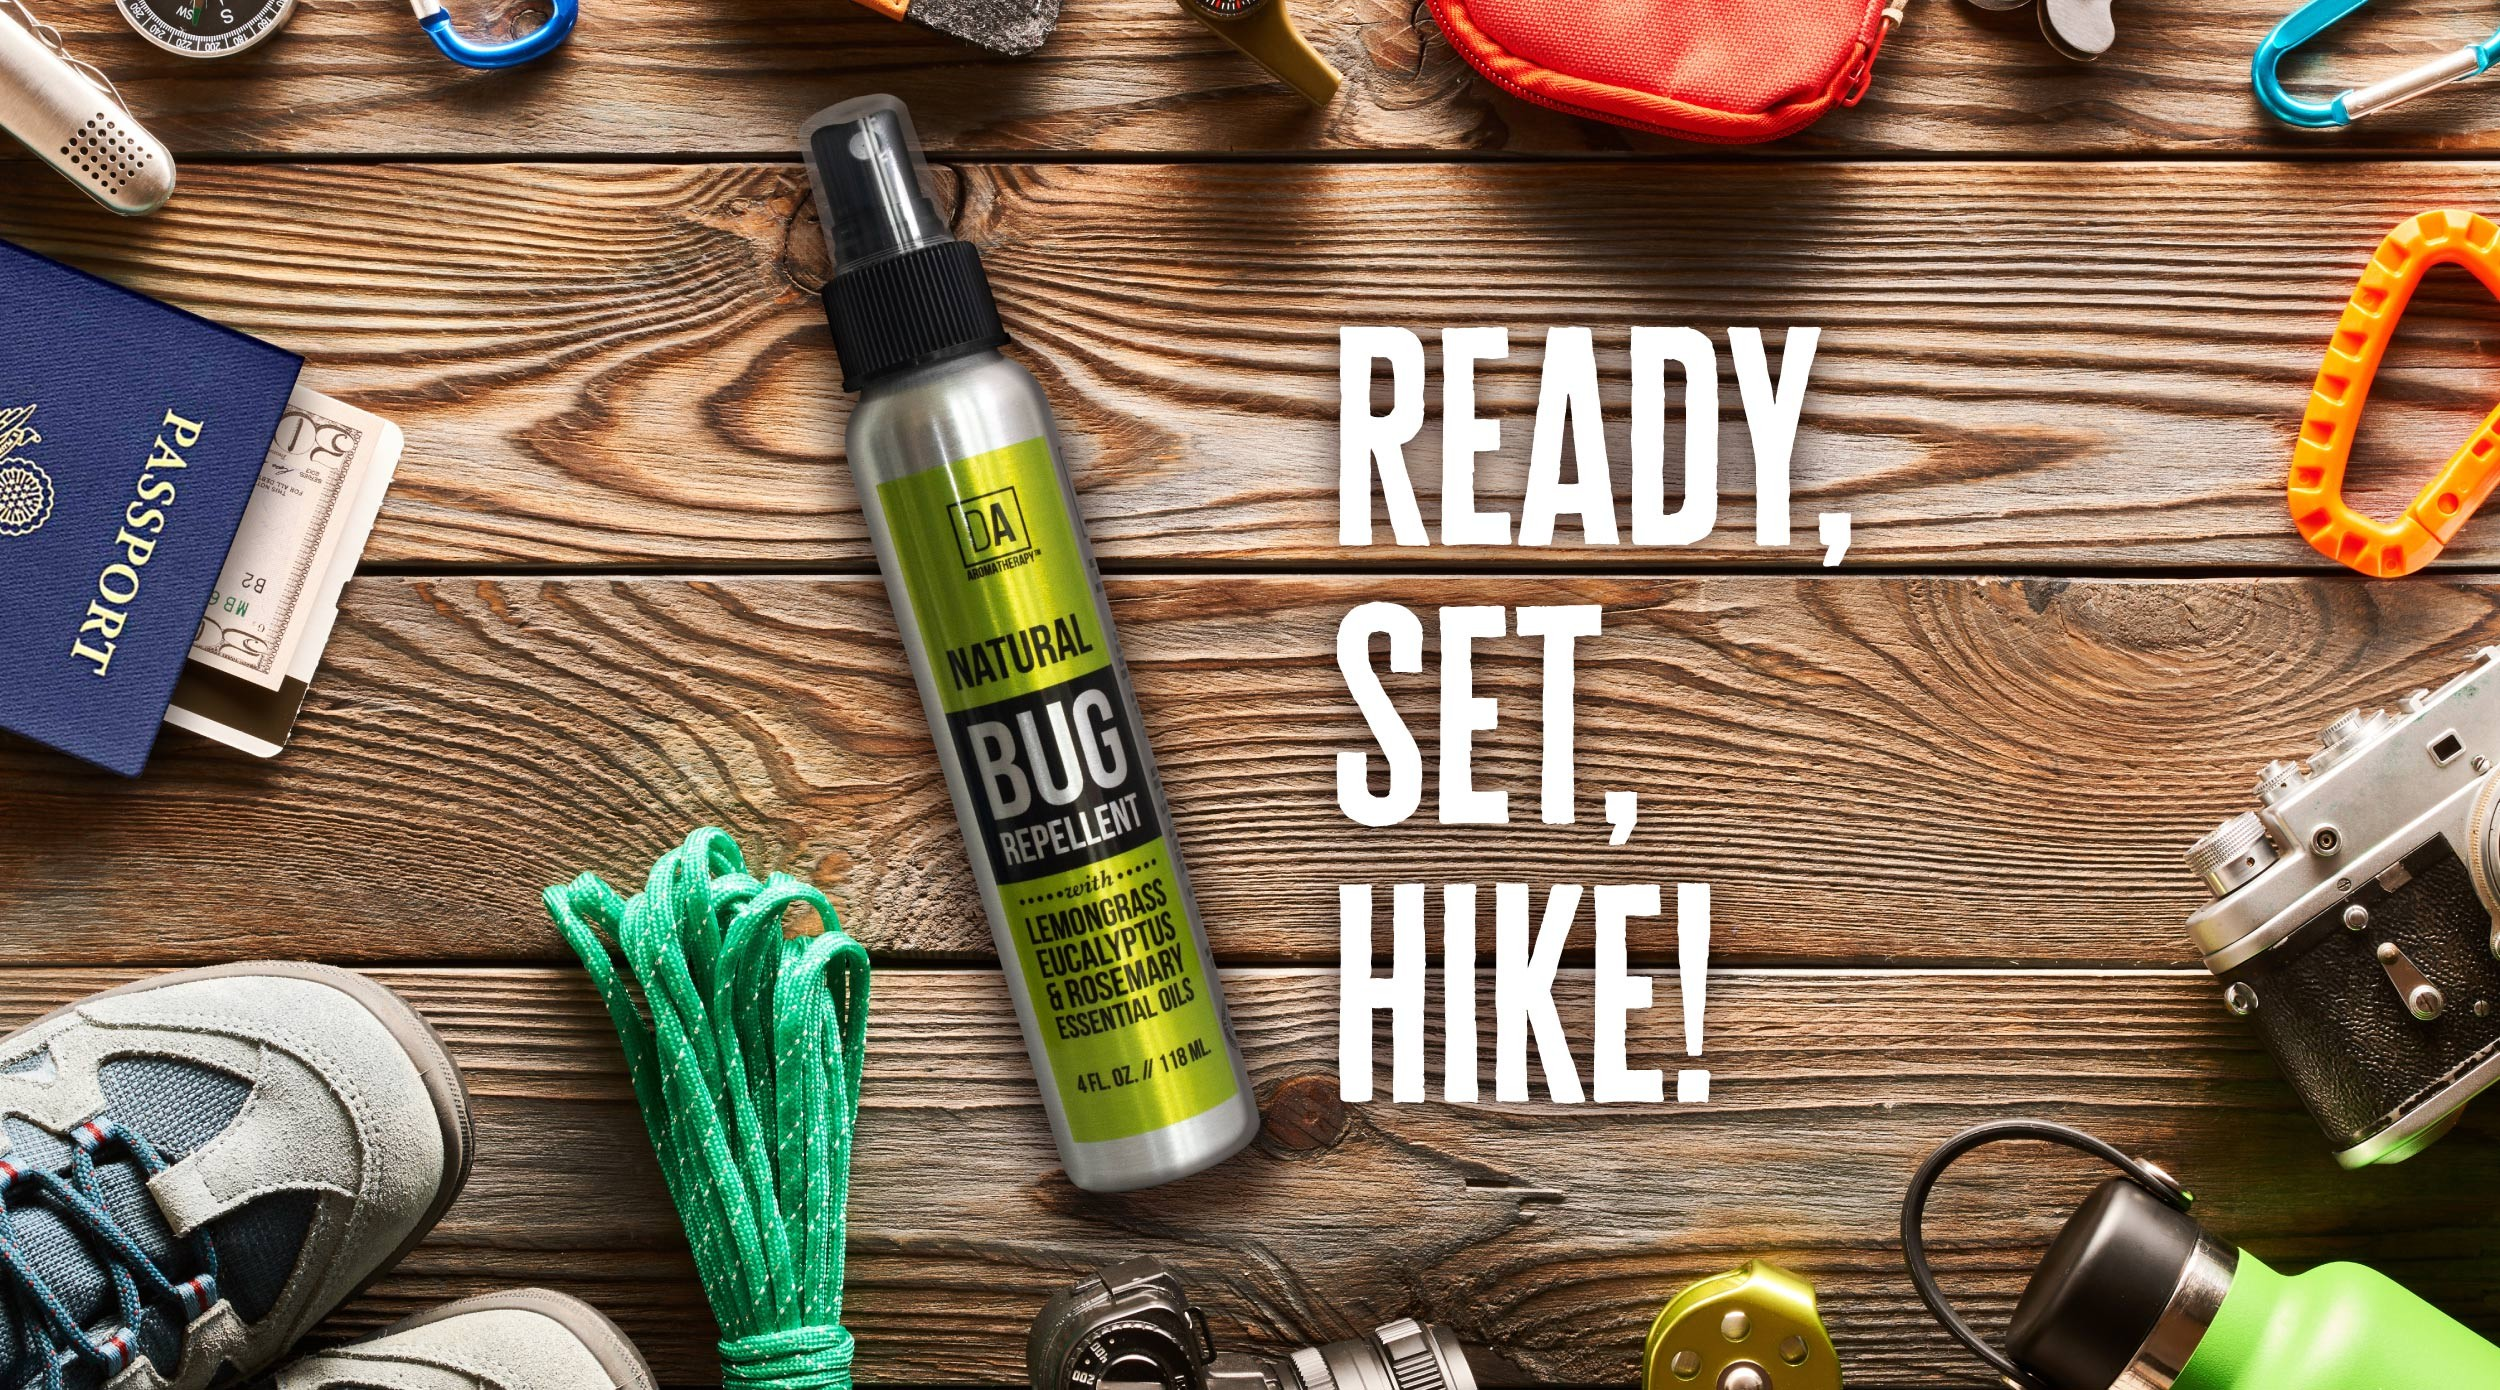 Preparing for an outdoor adventure? Don't forget a travel companion you can count on!